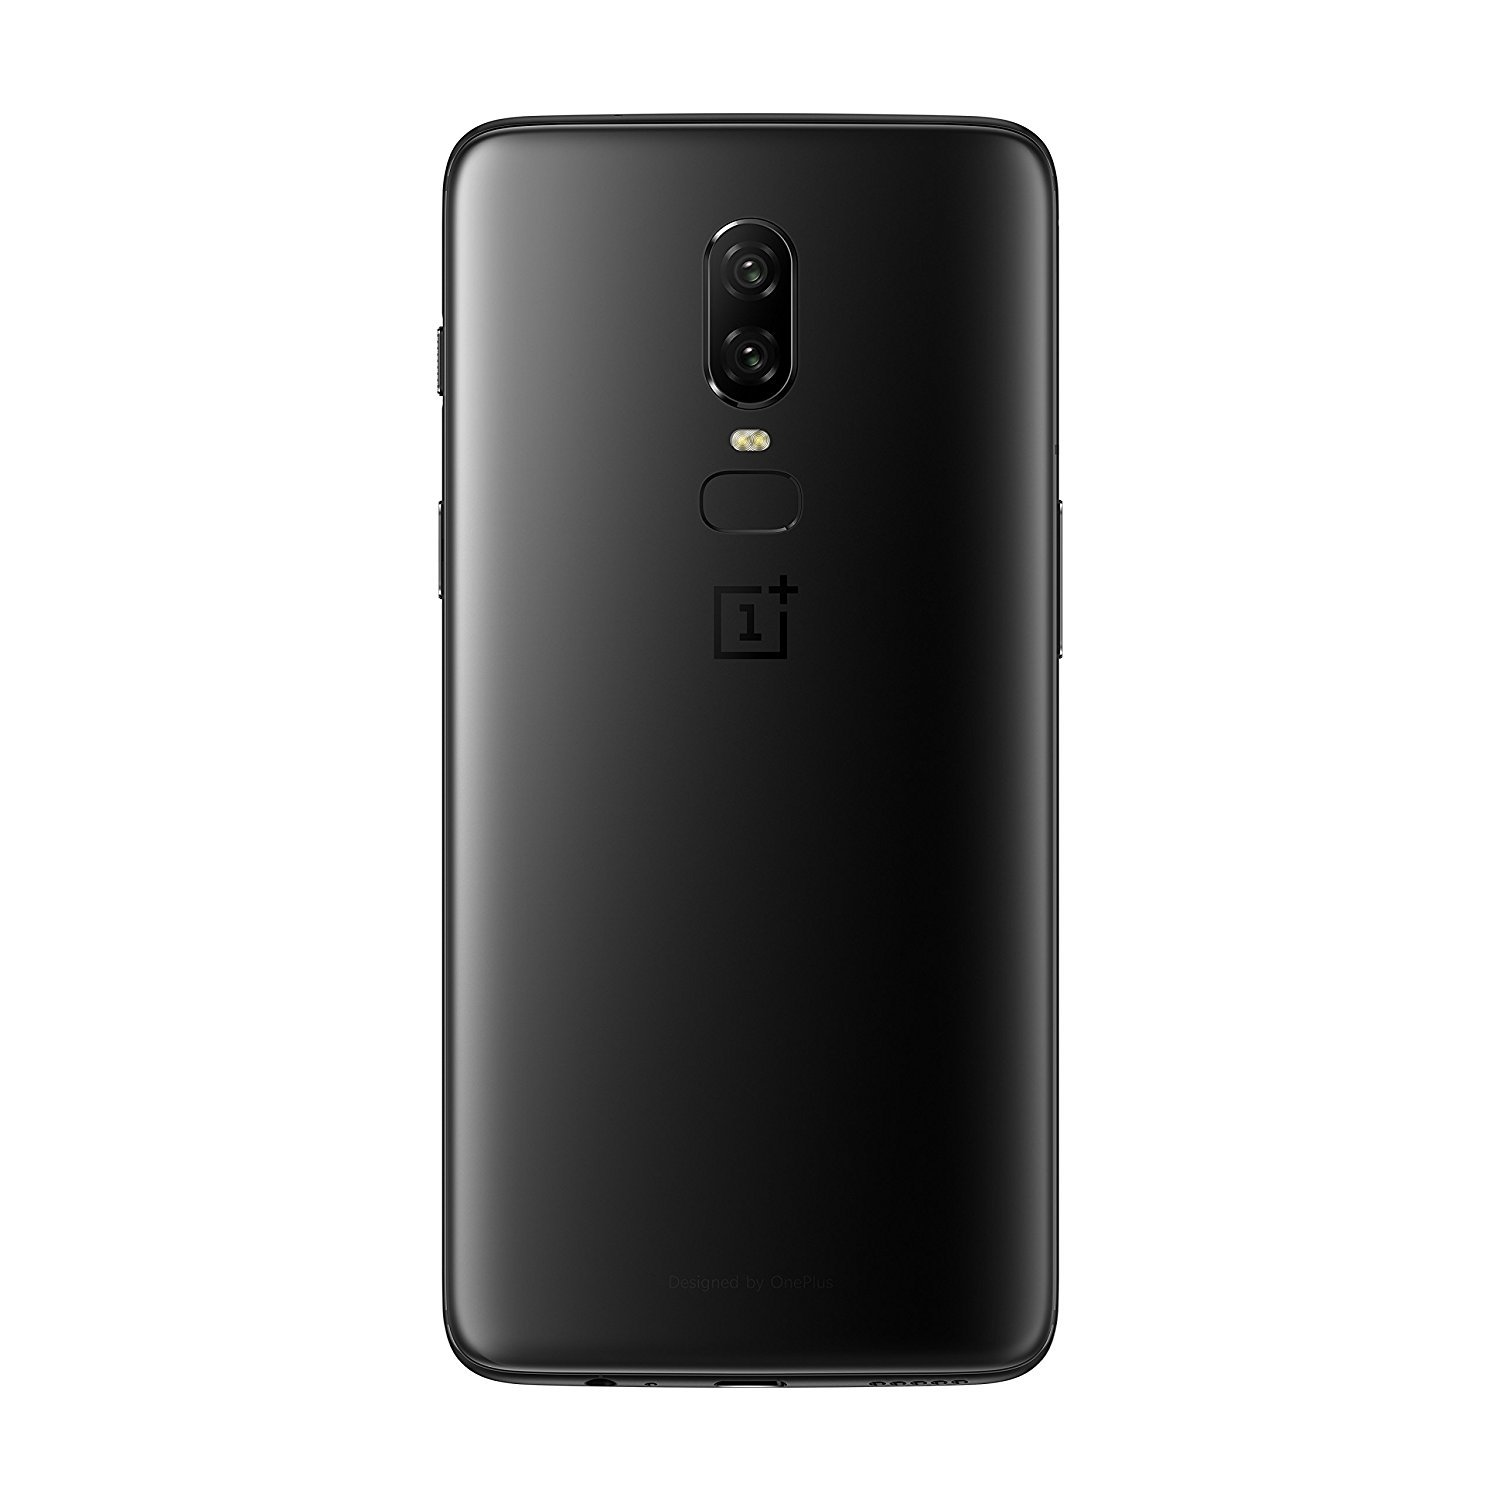 Amazon Listing reveals everything about the OnePlus 6 6